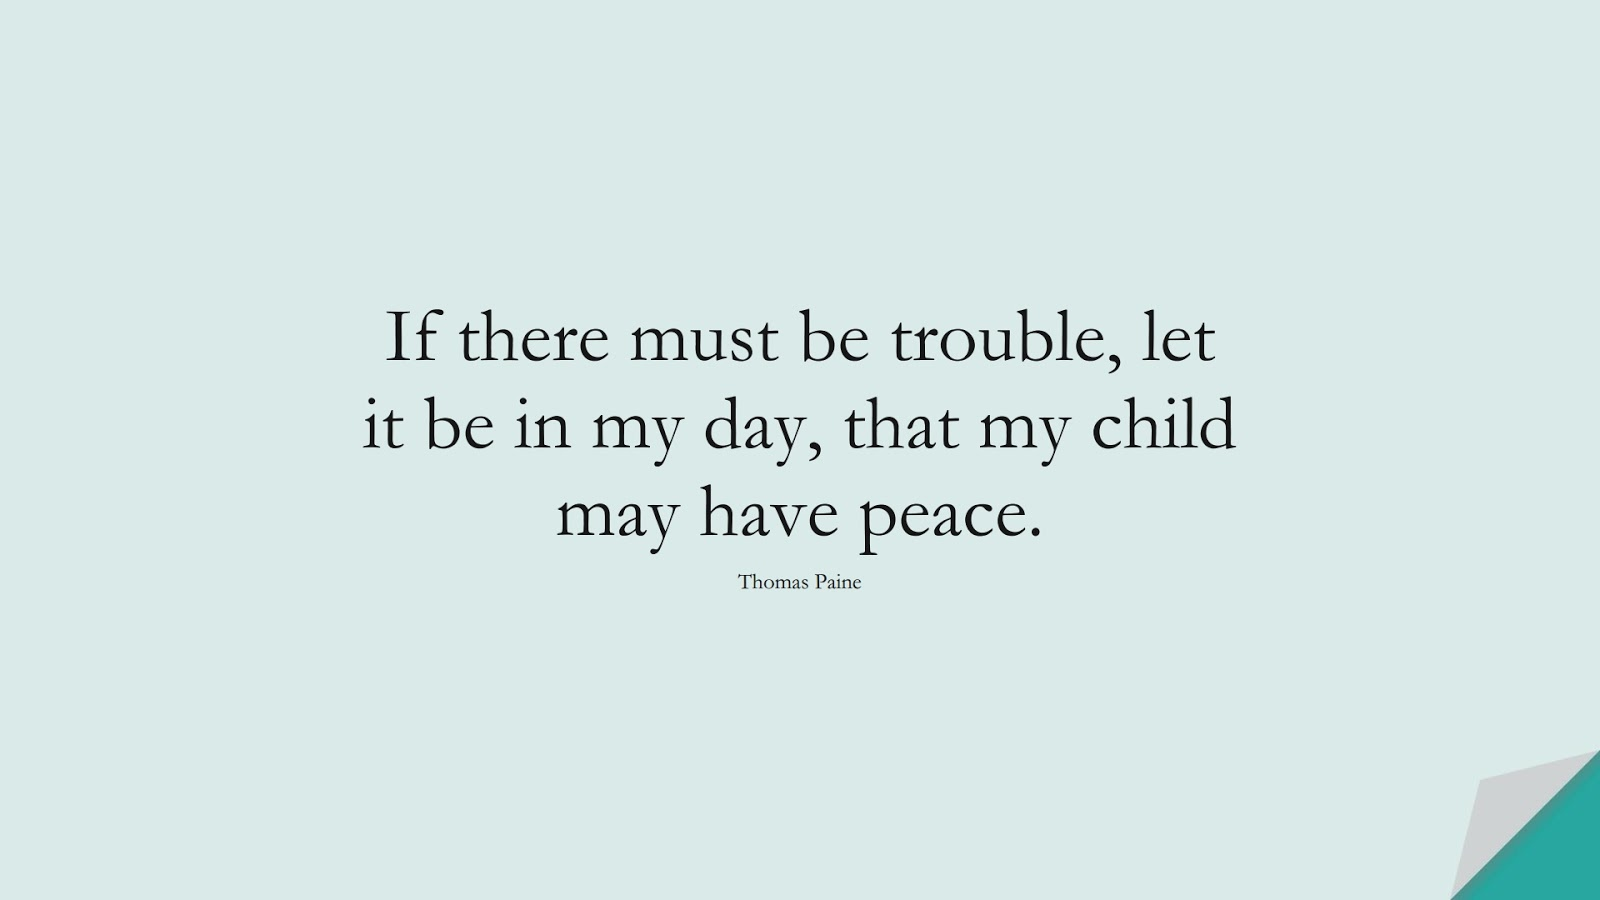 If there must be trouble, let it be in my day, that my child may have peace. (Thomas Paine);  #HumanityQuotes